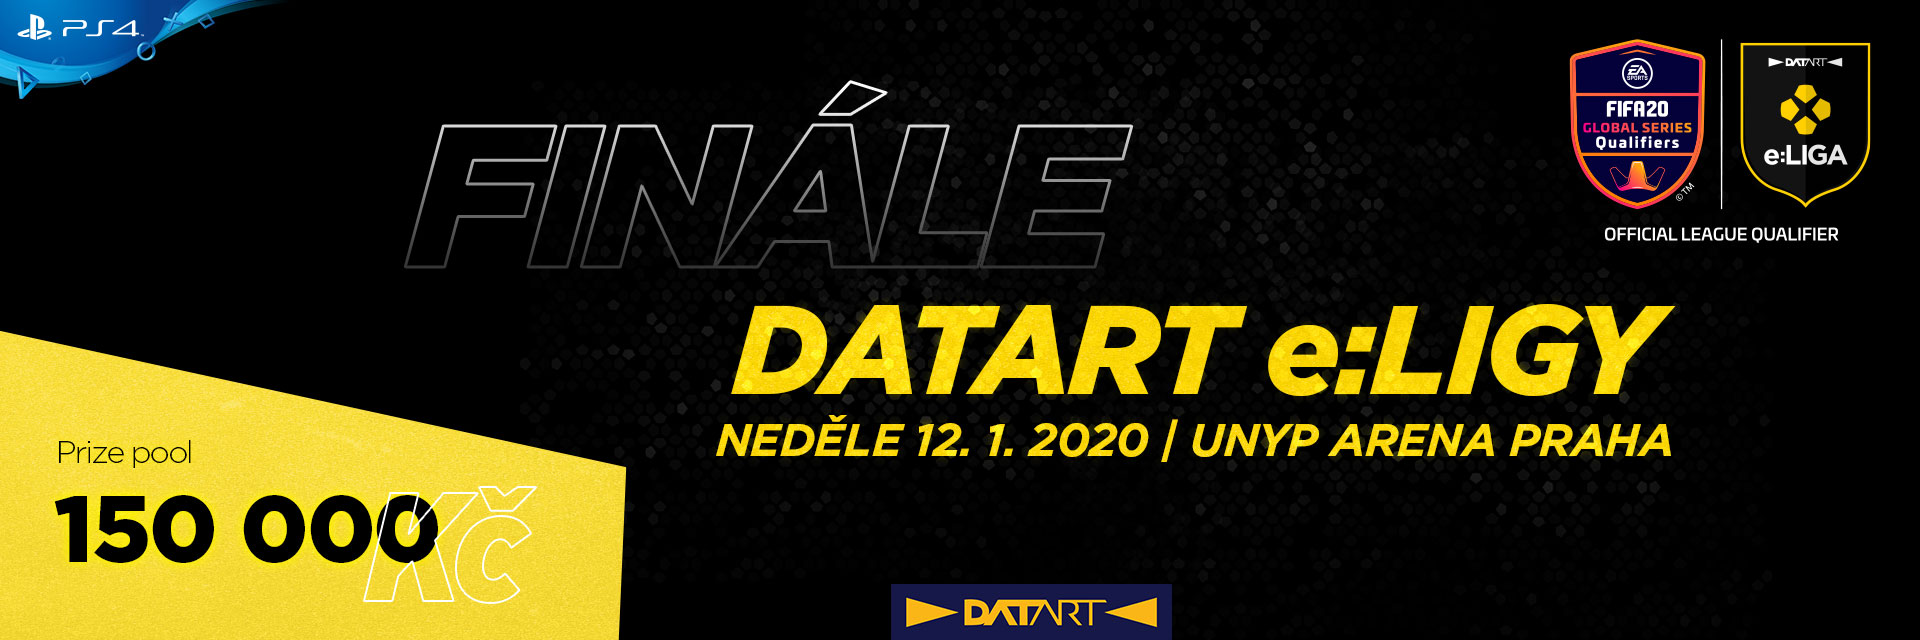 datart-e-liga-finale-play-off